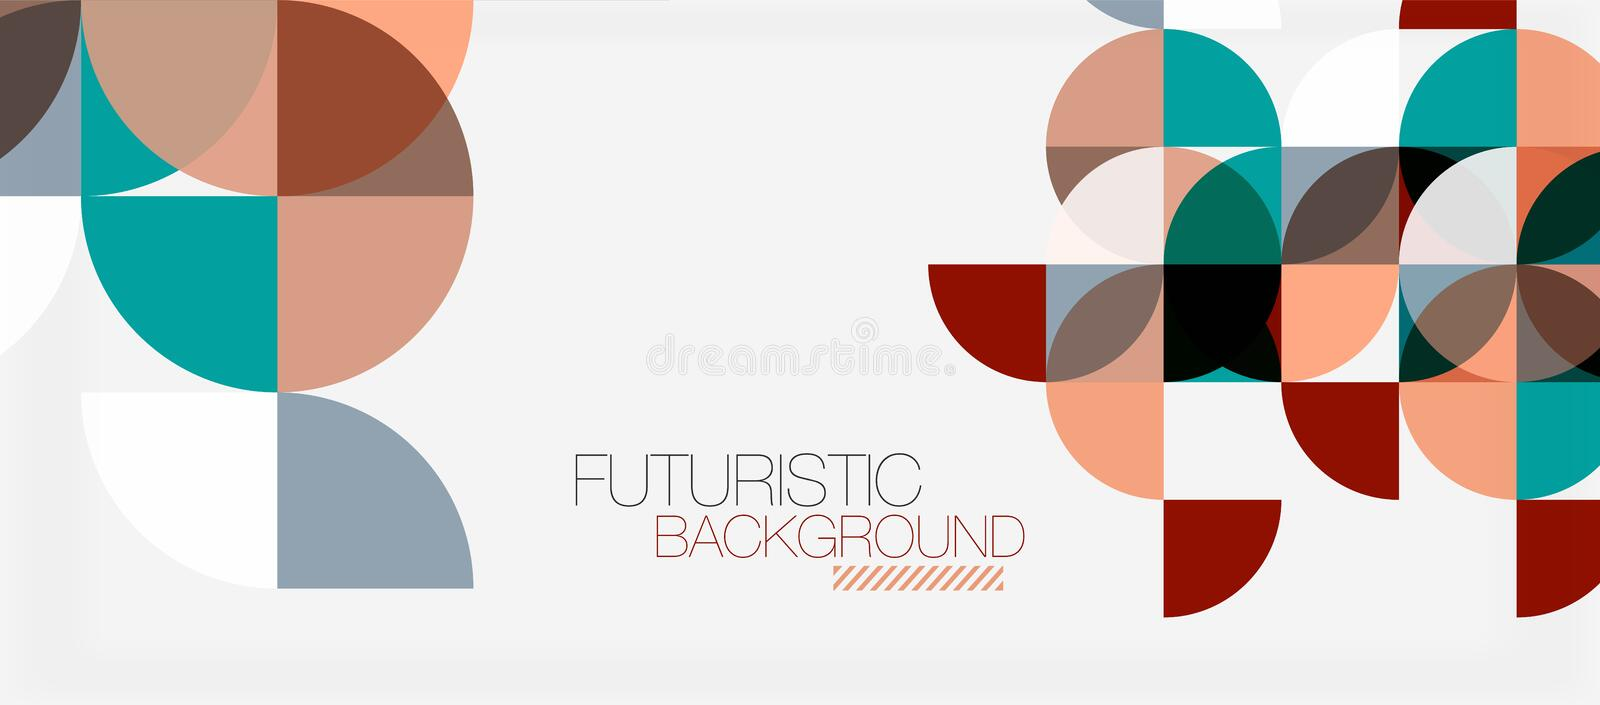 Geometric triangle and circle shape, wide abstract background vector illustration